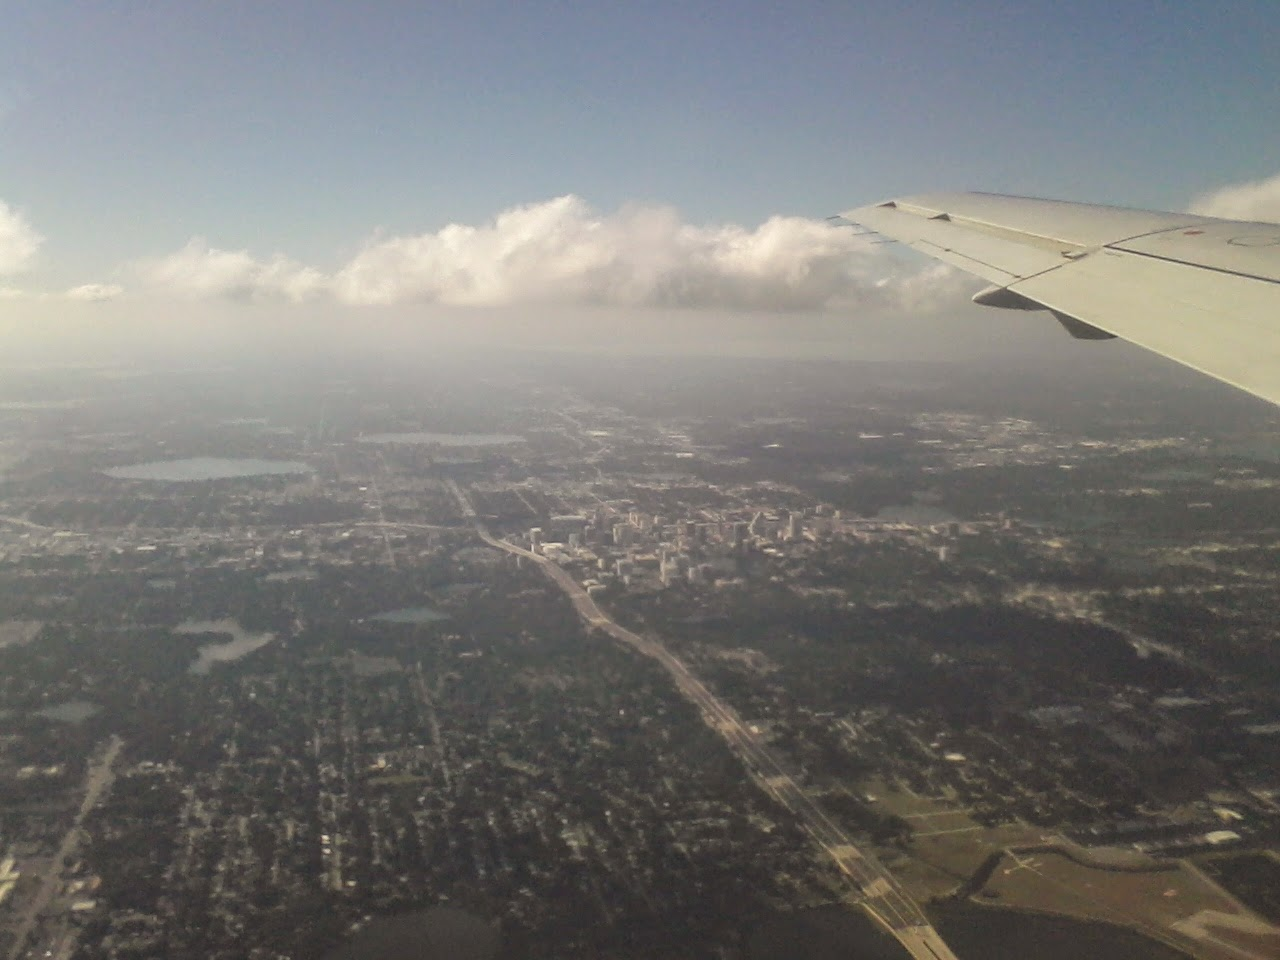 Key West Vacation - 1115141742.jpg